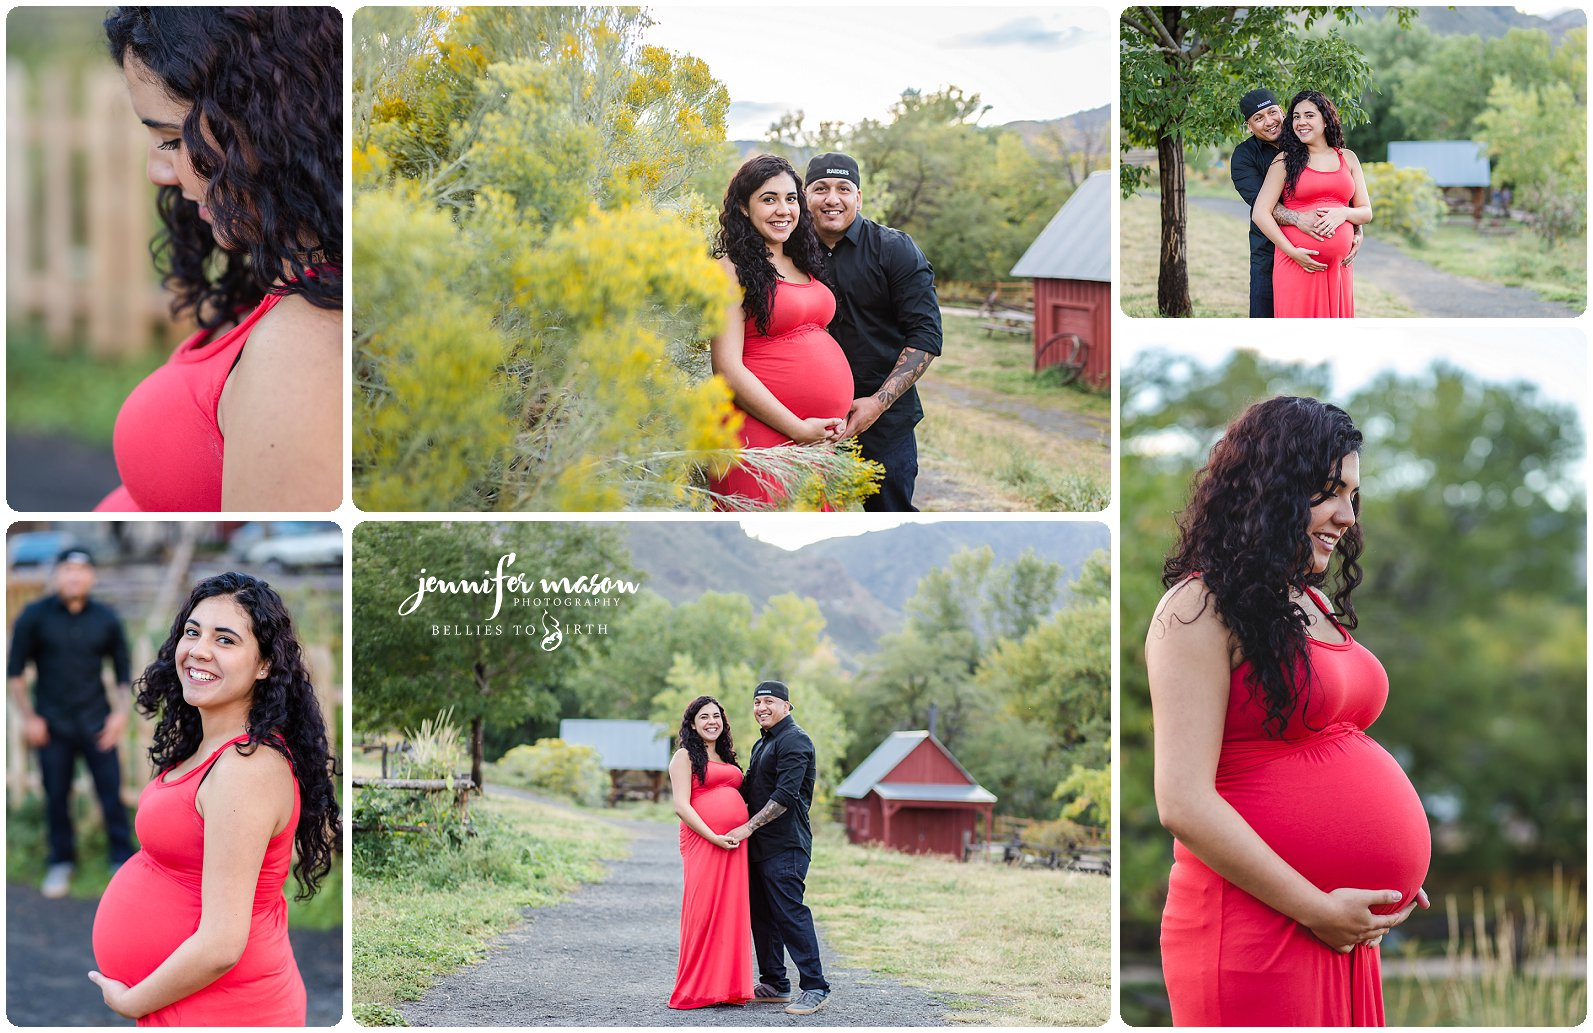 Maternity photography in Golden, Maternity photographer, birth photographer in Golden, homebirth photographer